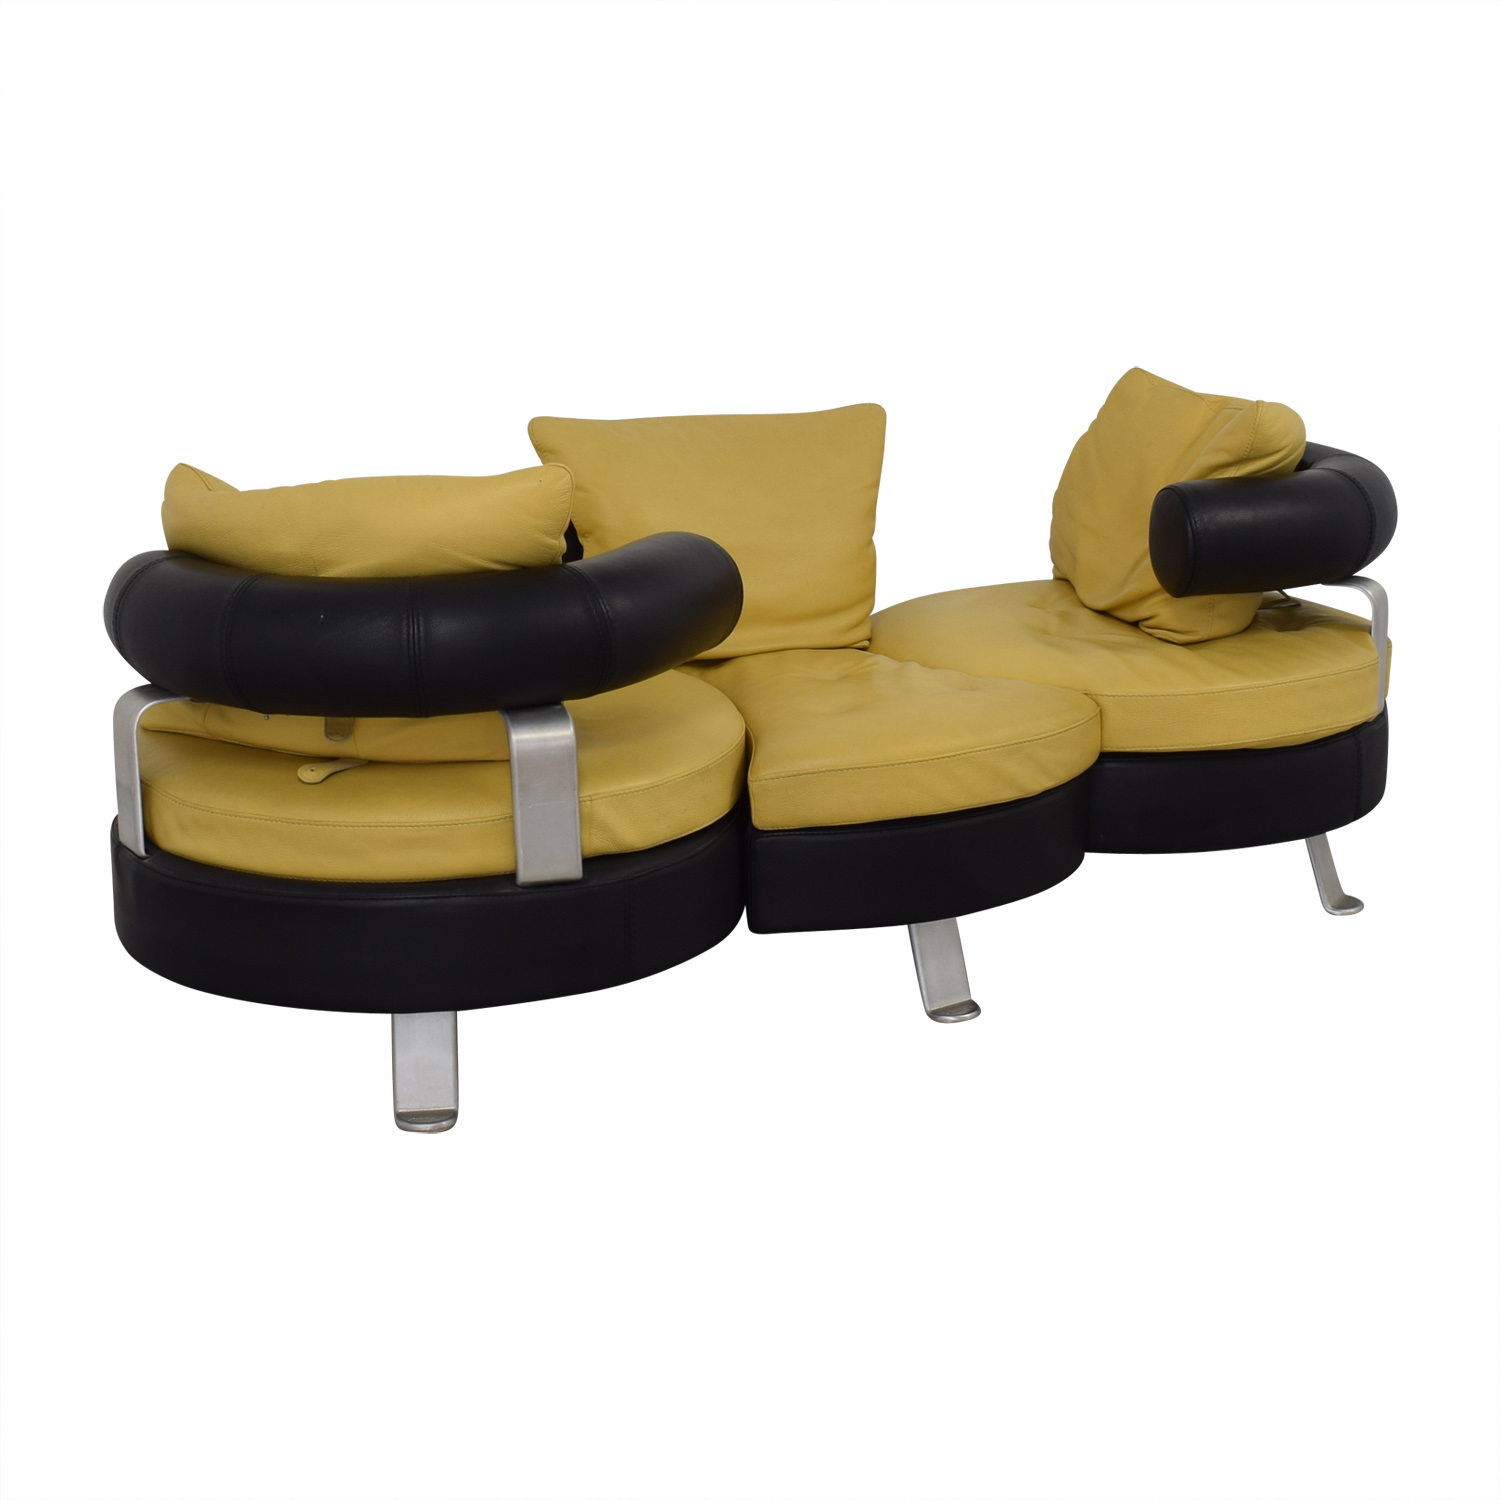 buy Formenti Formenti Formenti Divani Contemporary Original Swivel Sofa online